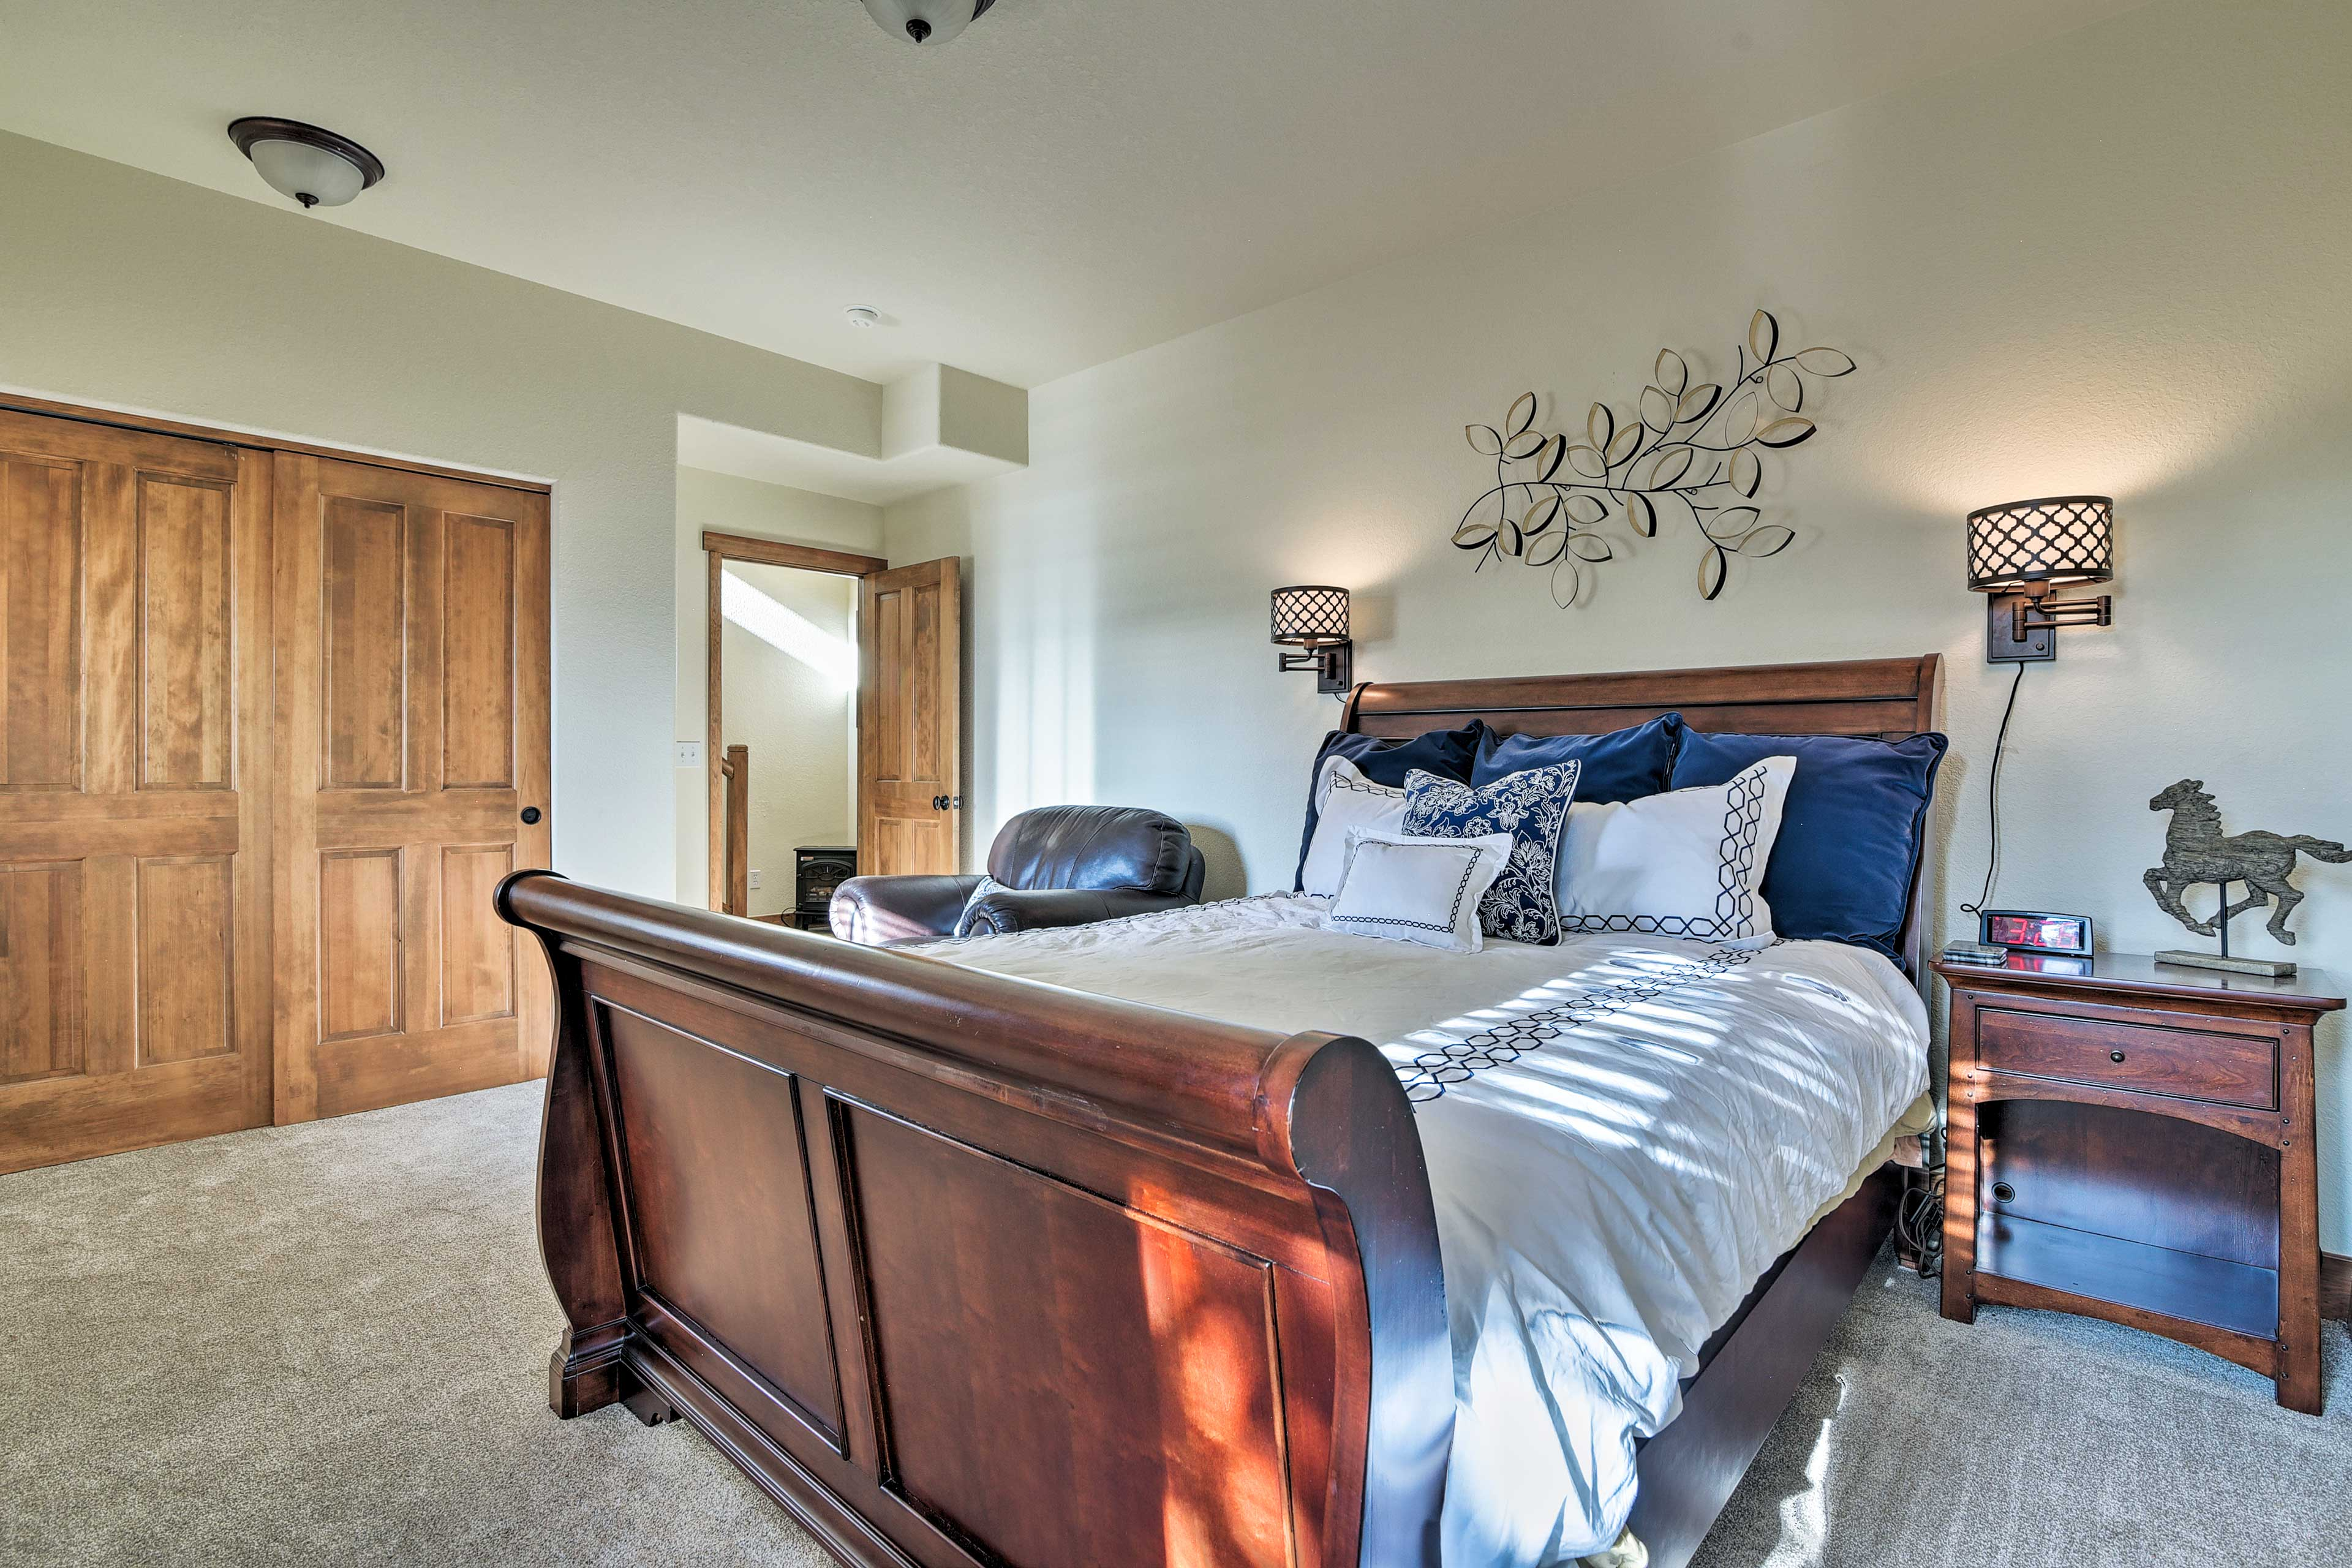 A queen bed and electric fireplace finish off this bedroom.